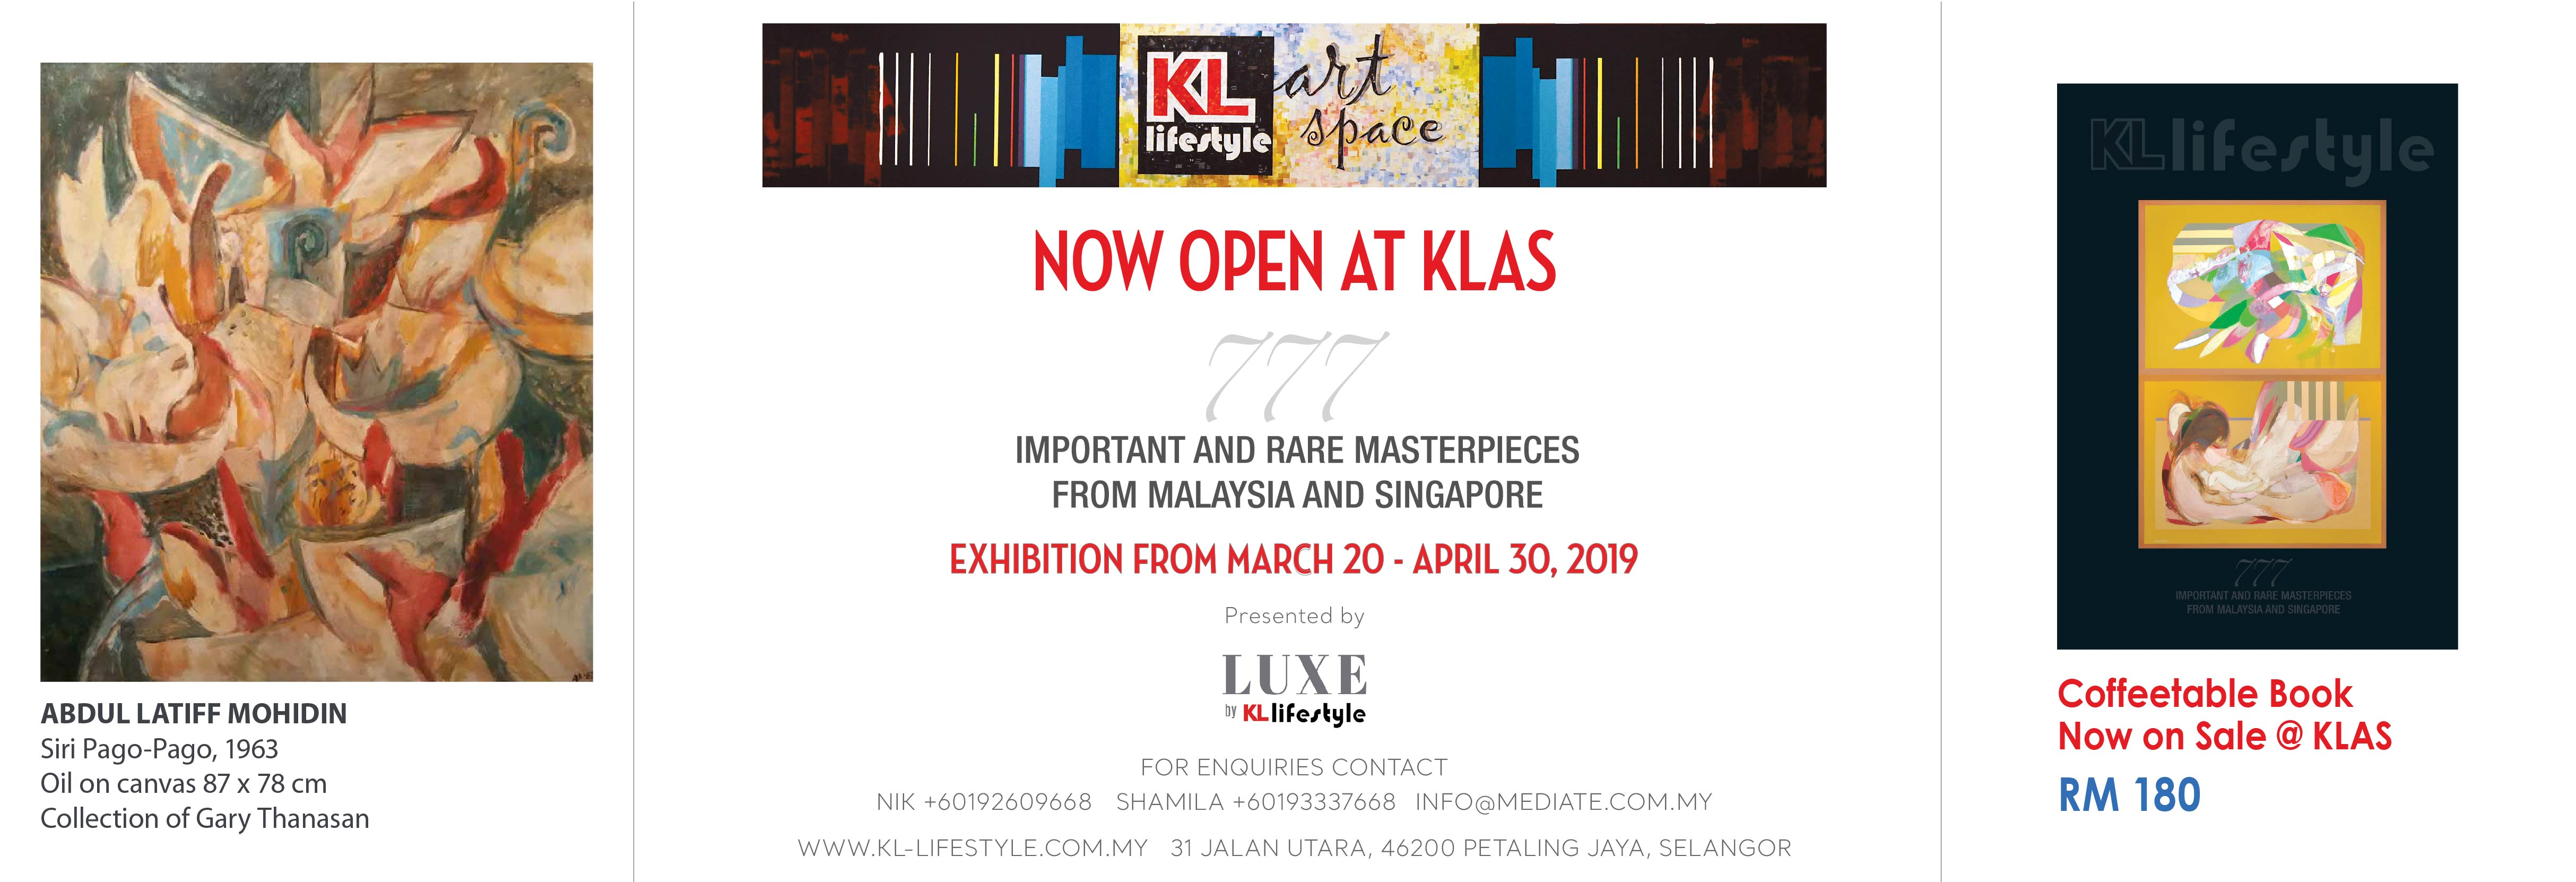 777 NOW OPEN AT KLAS COFFEE BOOK WEB BANNER-06